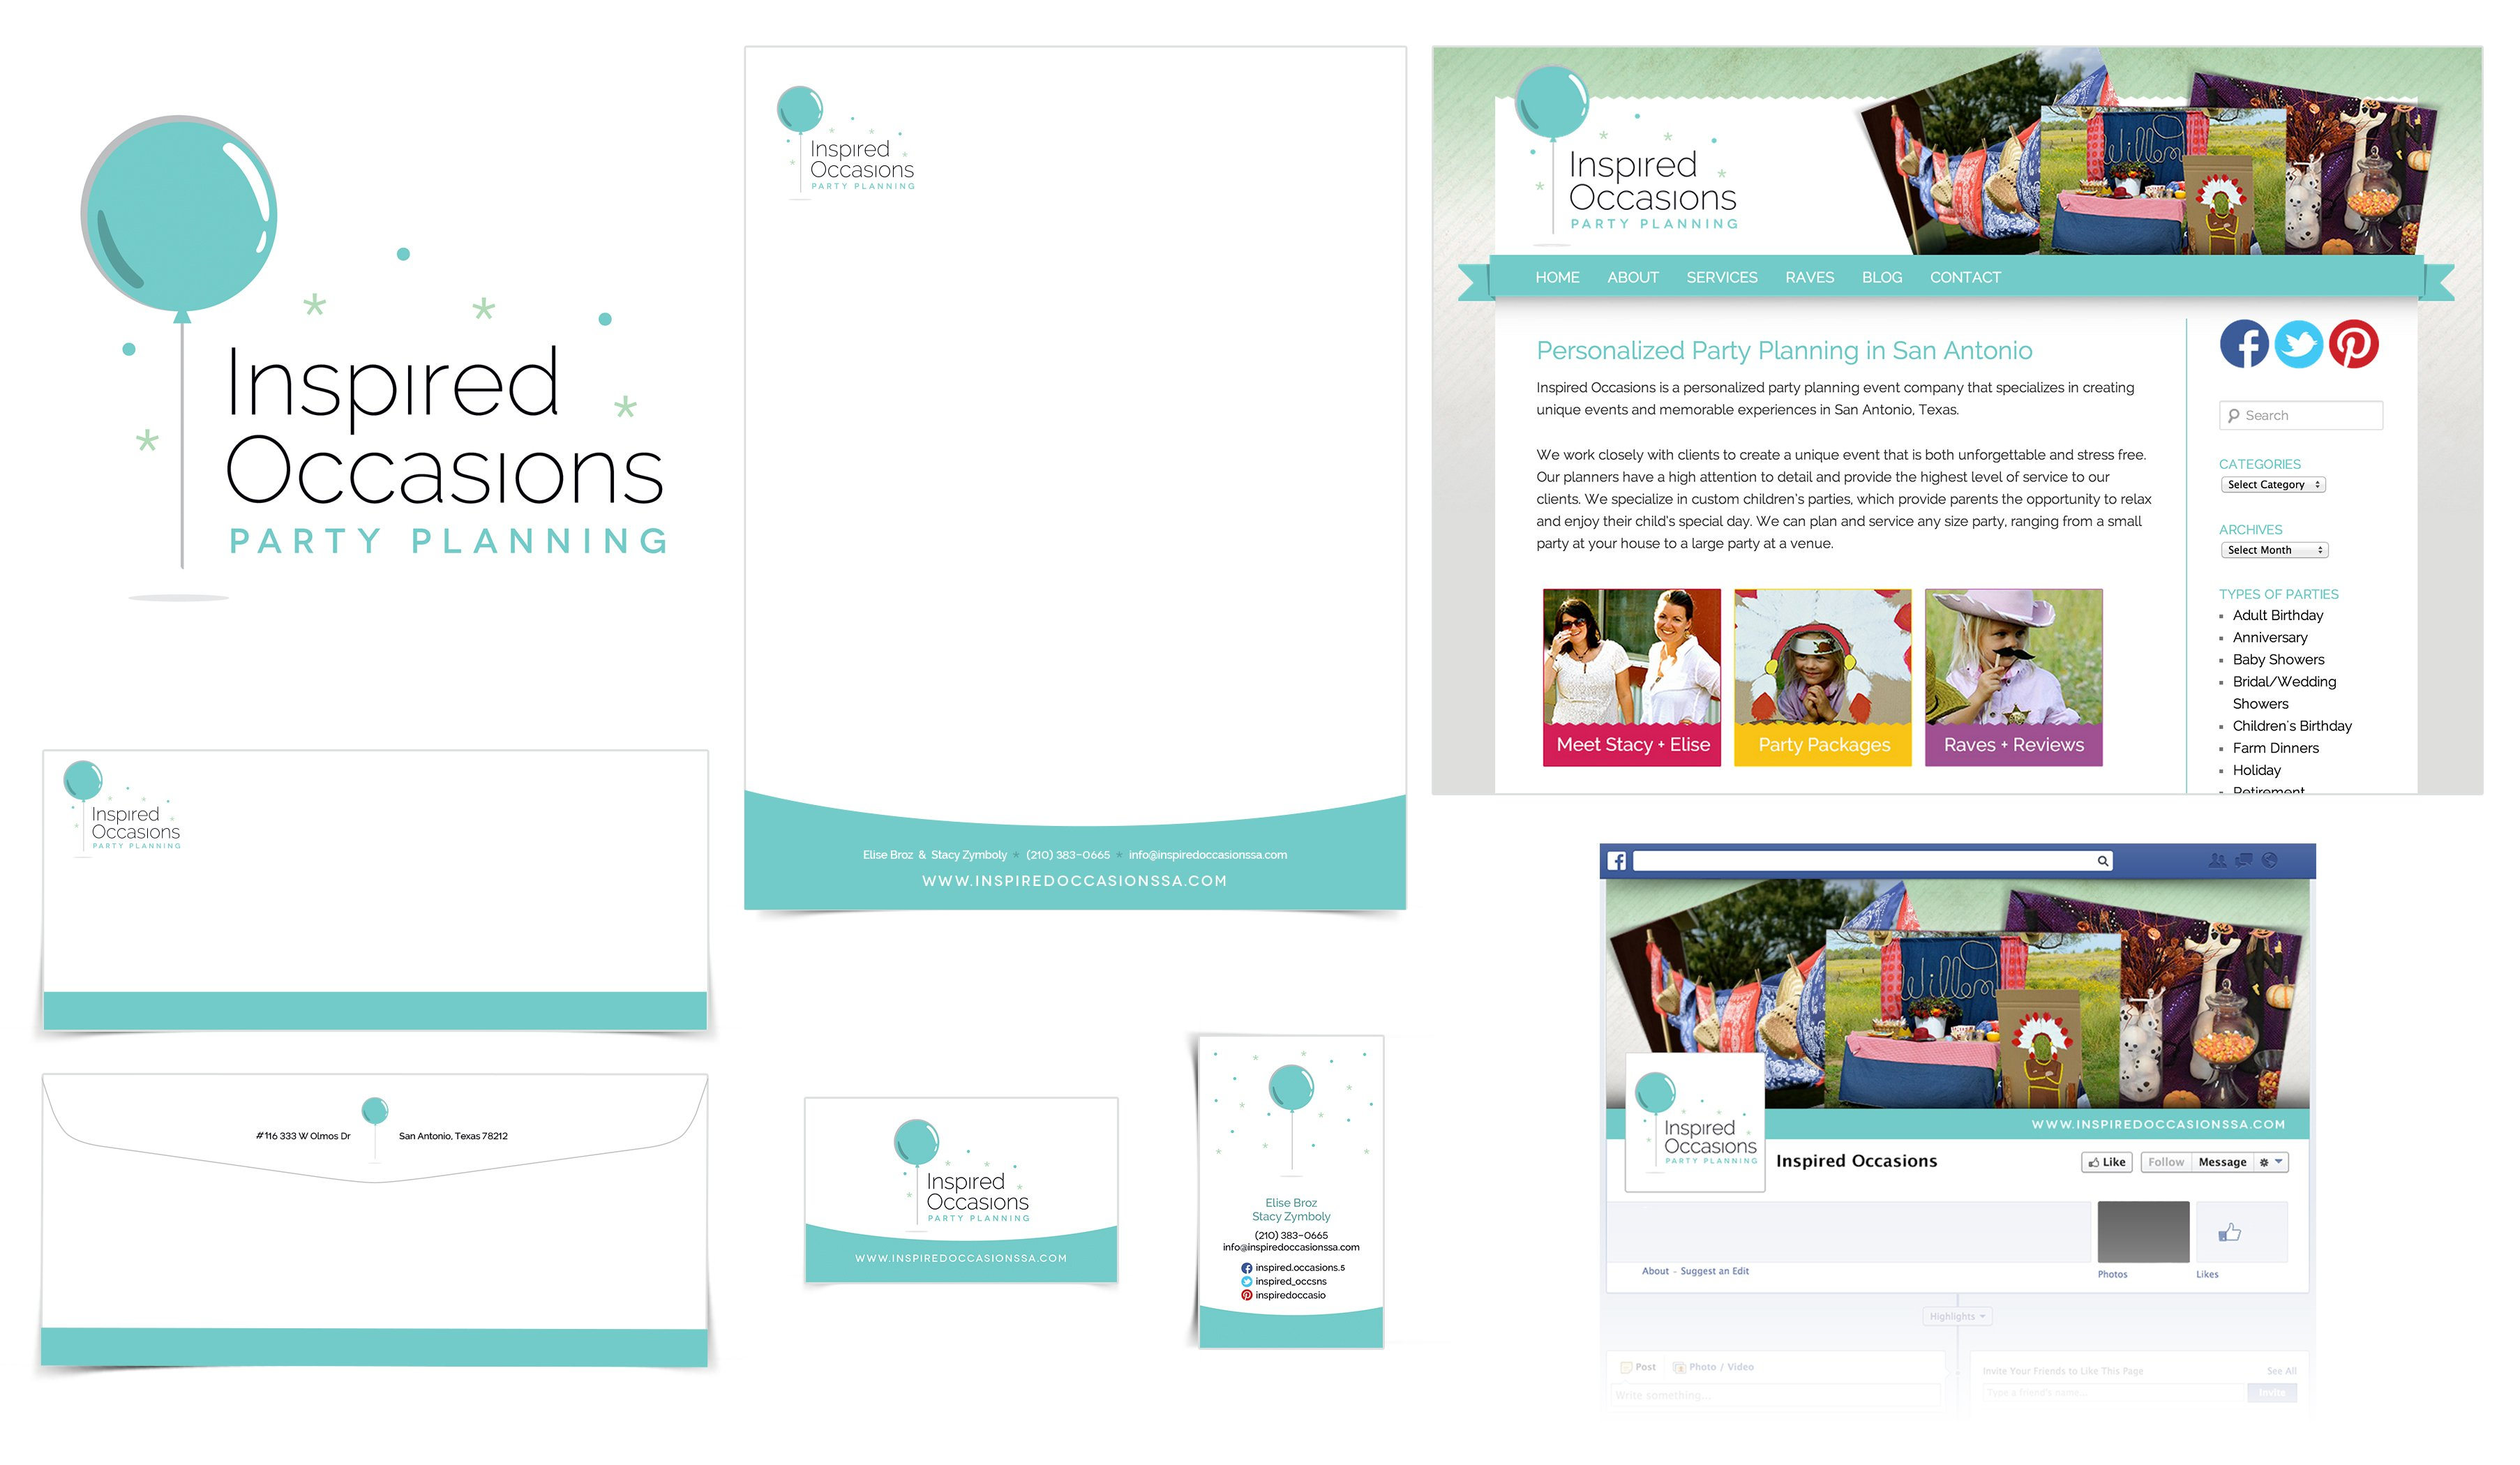 AGDA_2014_5_Inspired Occasions Branding